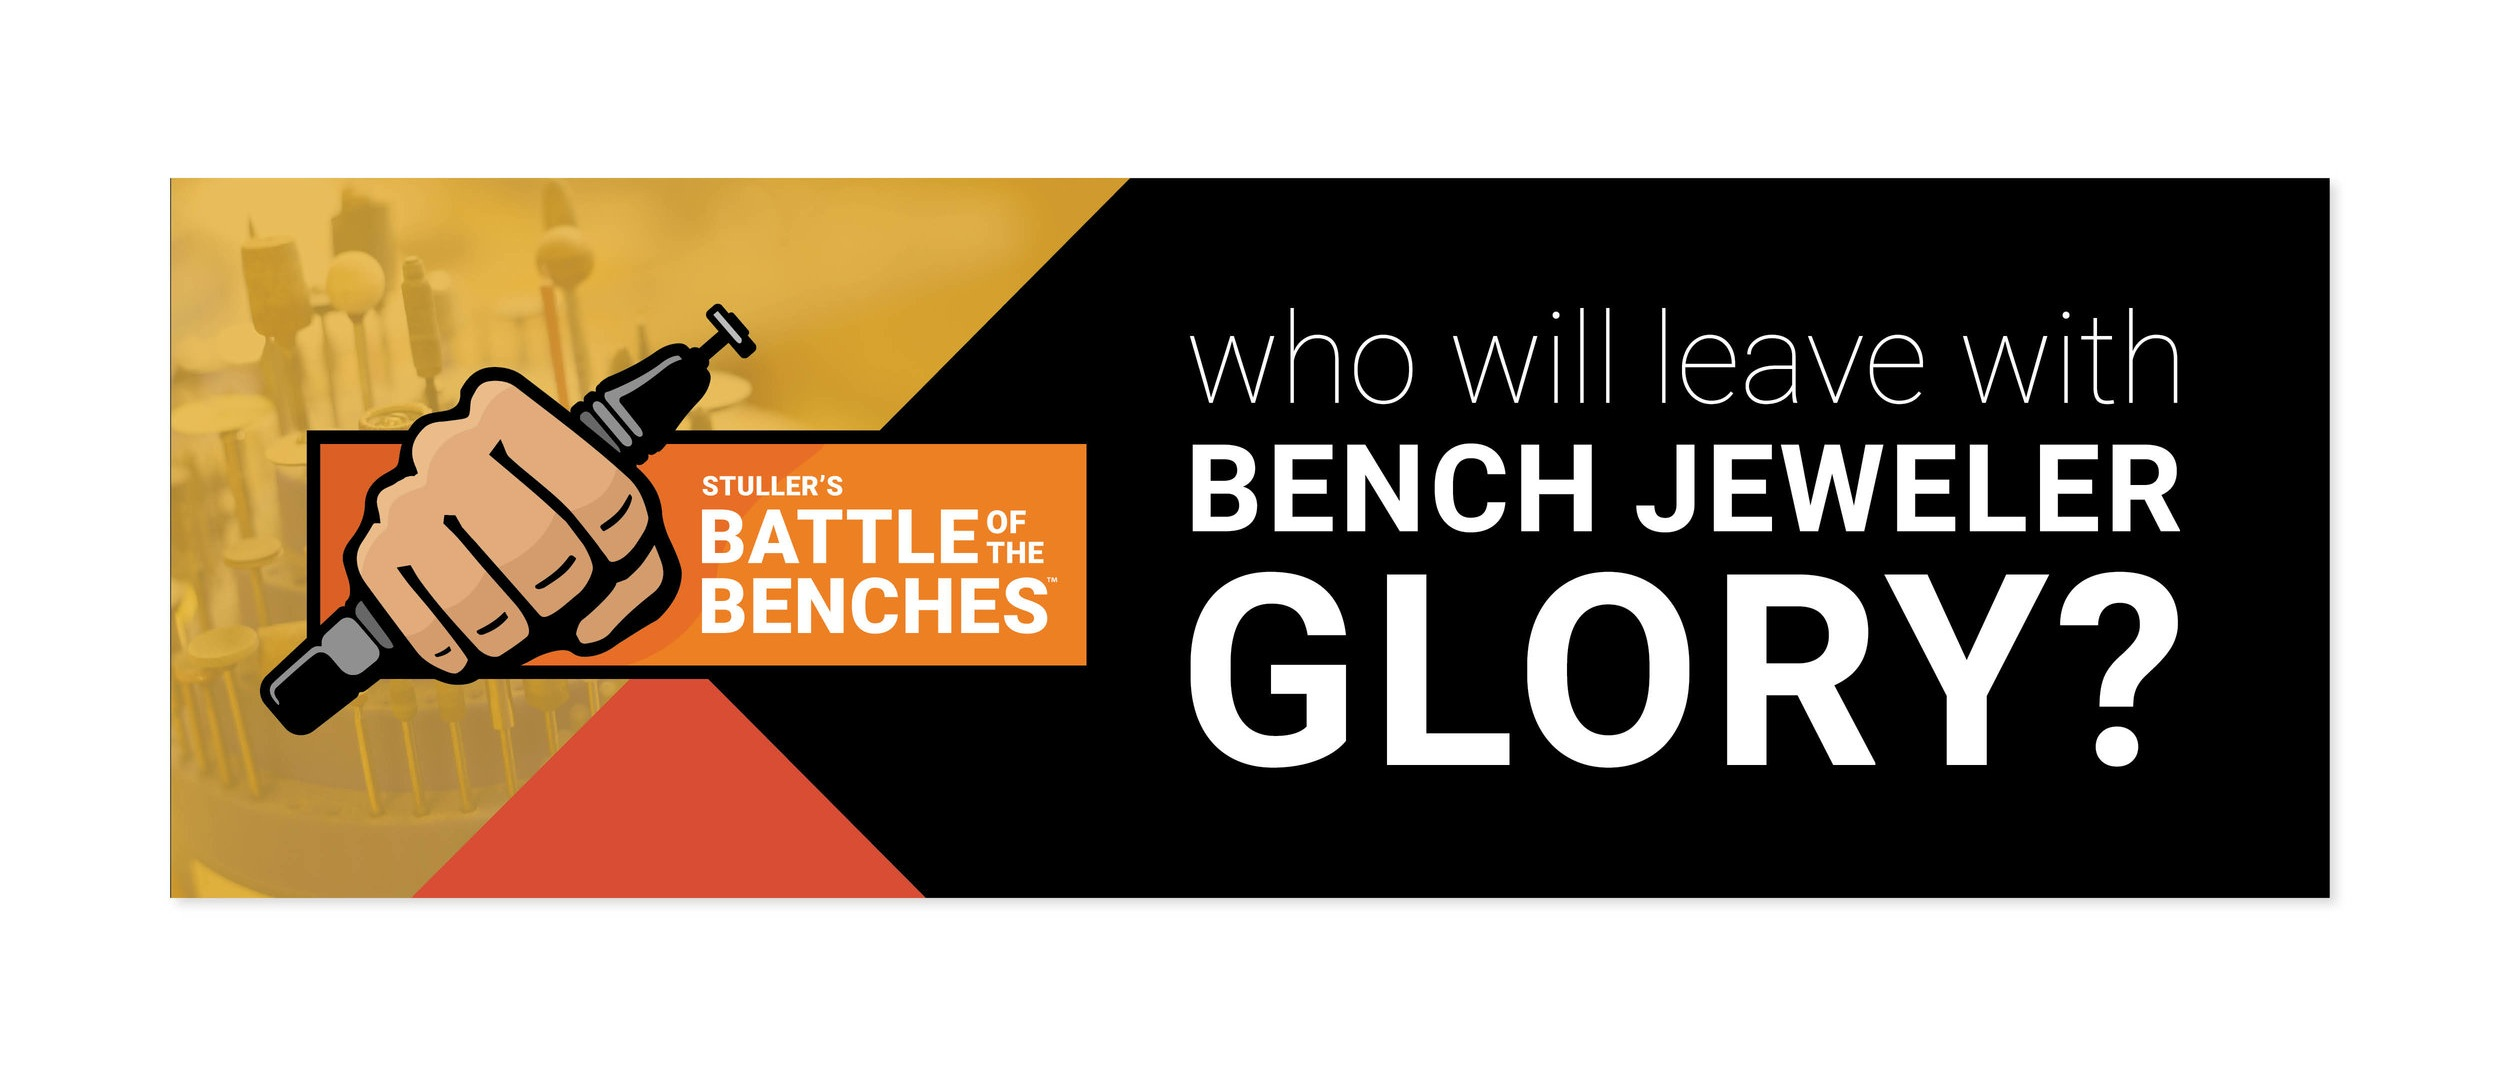 Battle of the Benches Signage